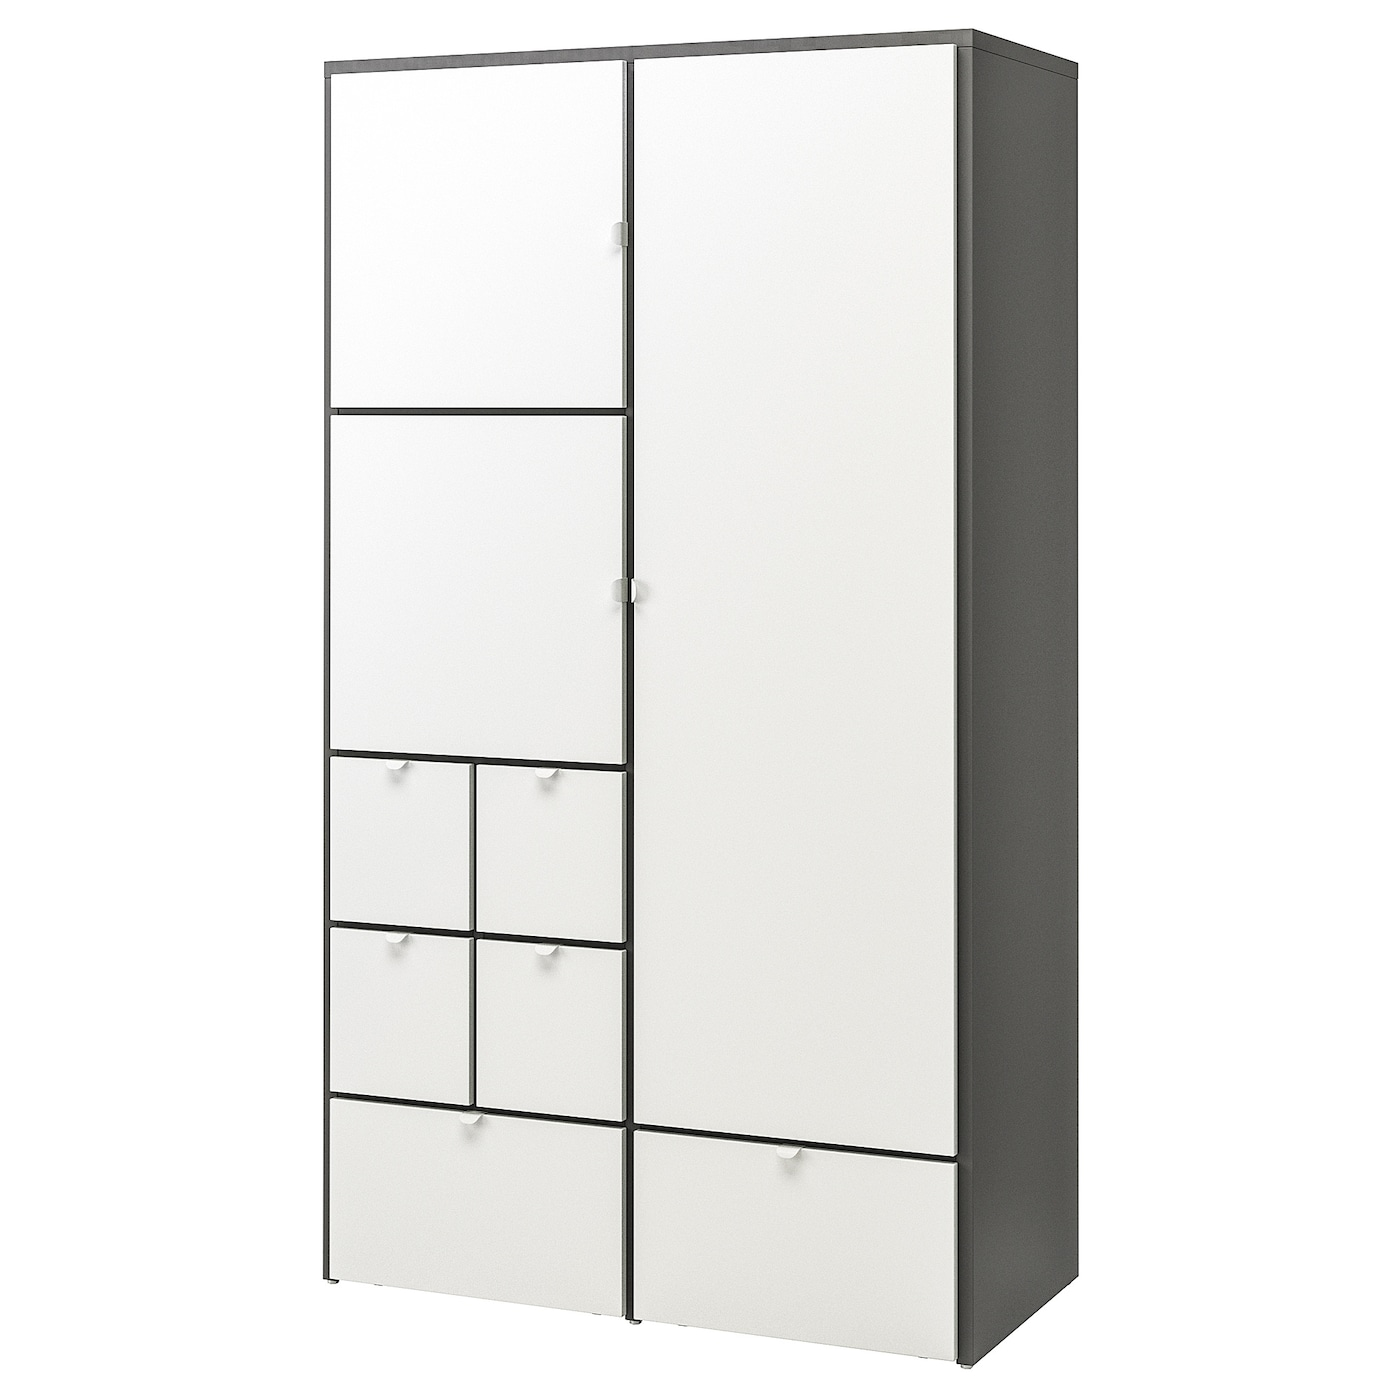 Ikea visthus wardrobe the bottom drawers have castors and therefore easy to move about